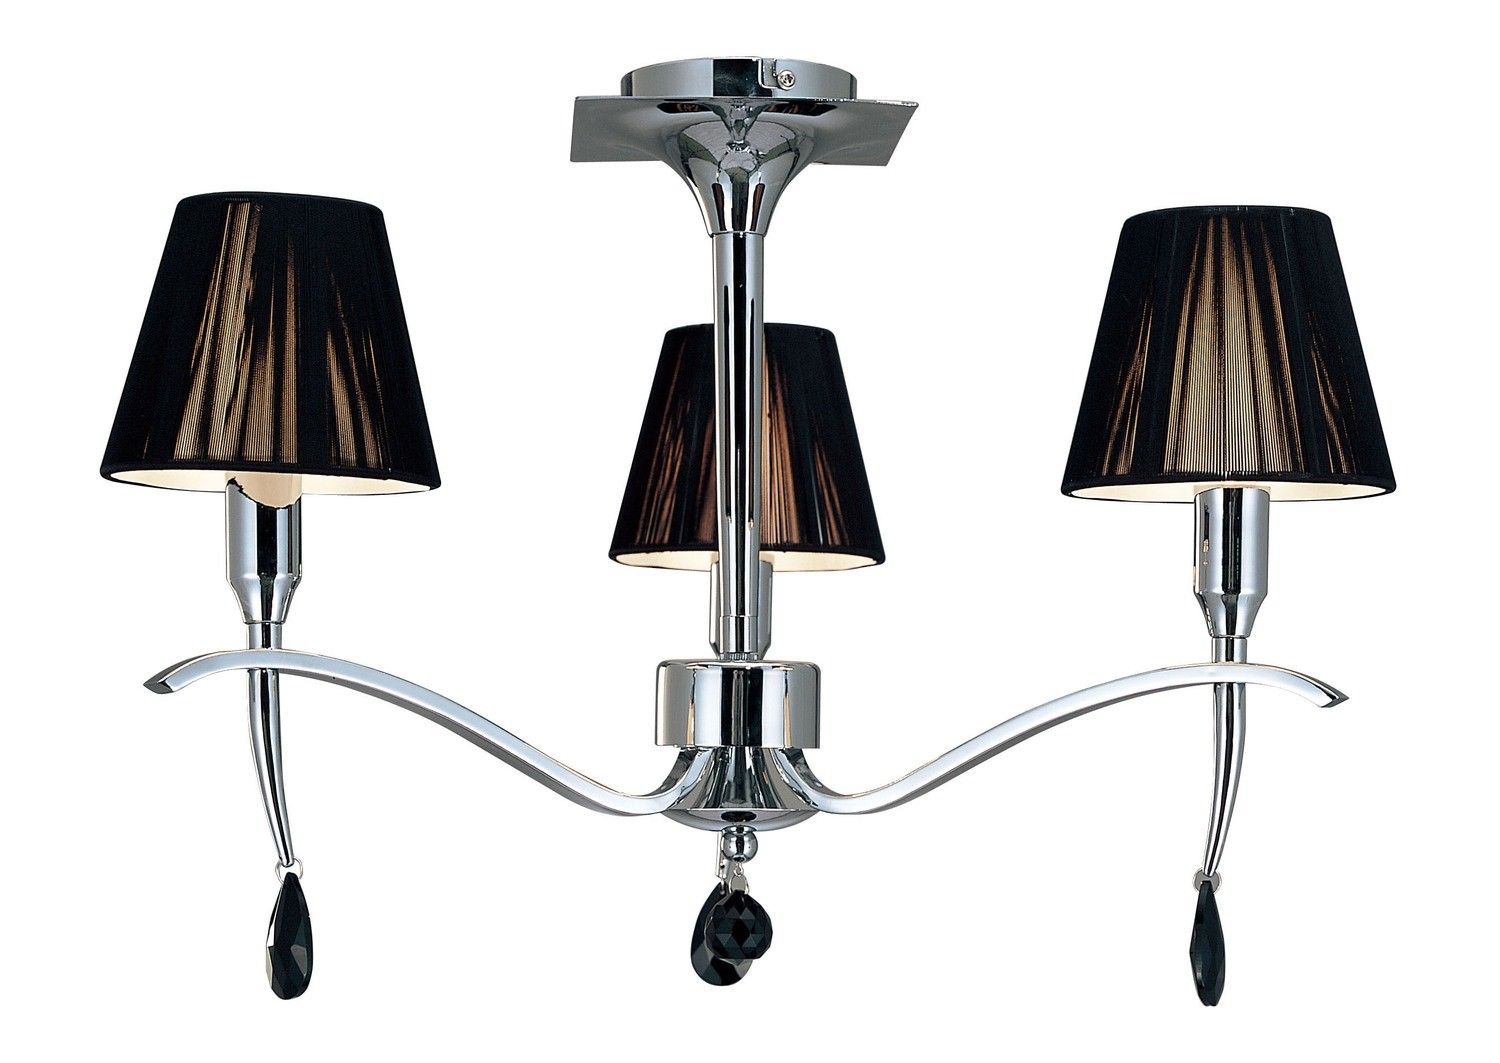 Siena Semi Ceiling Round 3 Light E14, Polished Chrome With Black Shades And Black Crystal